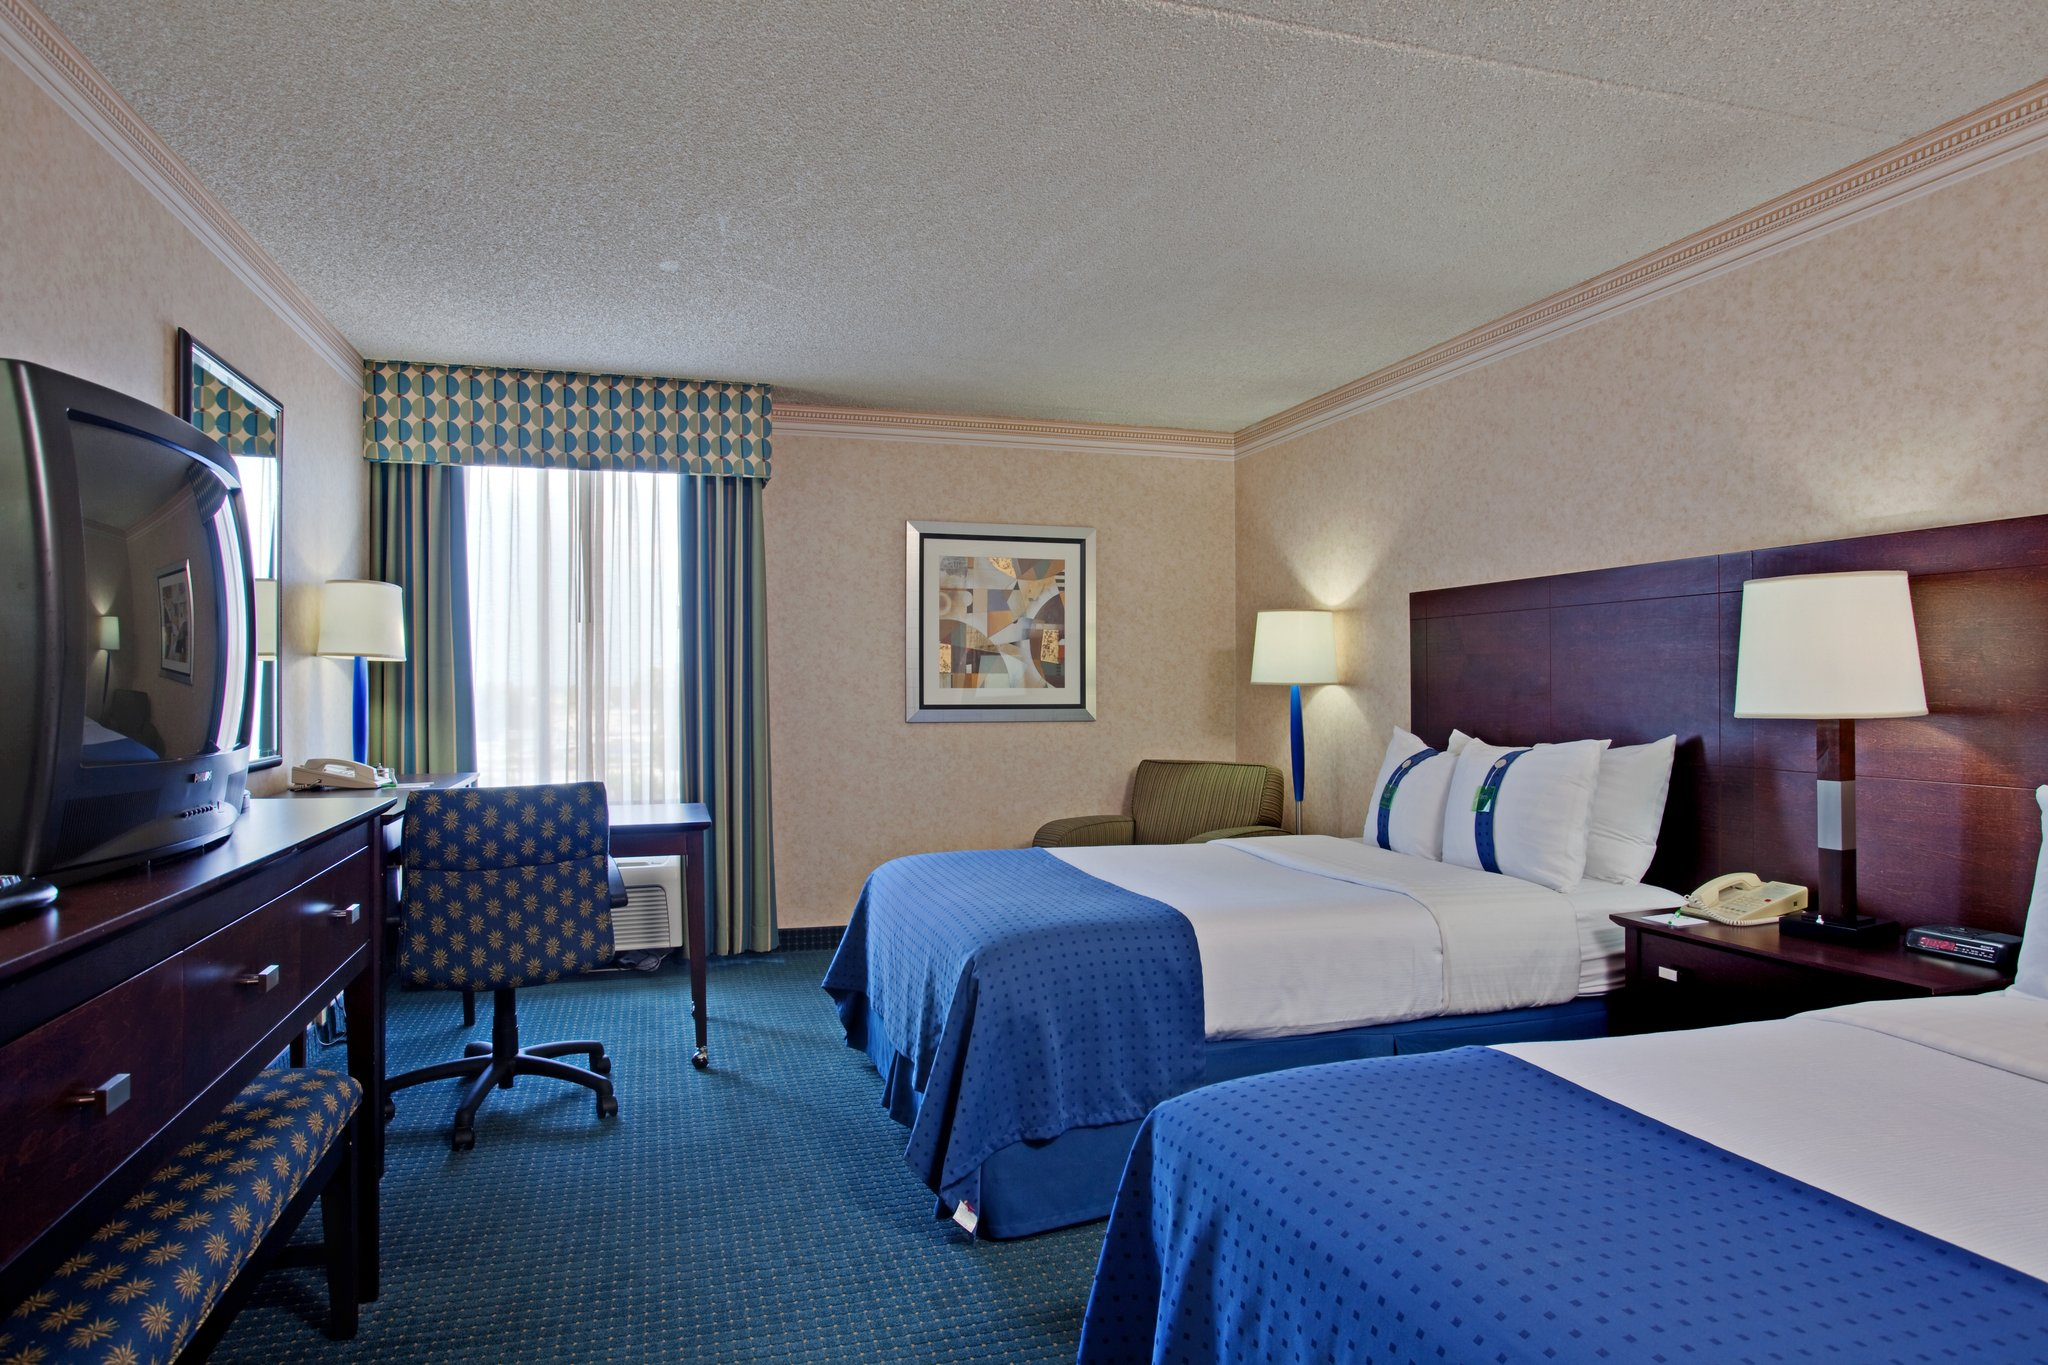 Superior Spacious Guest Rooms And Suites In La Mirada